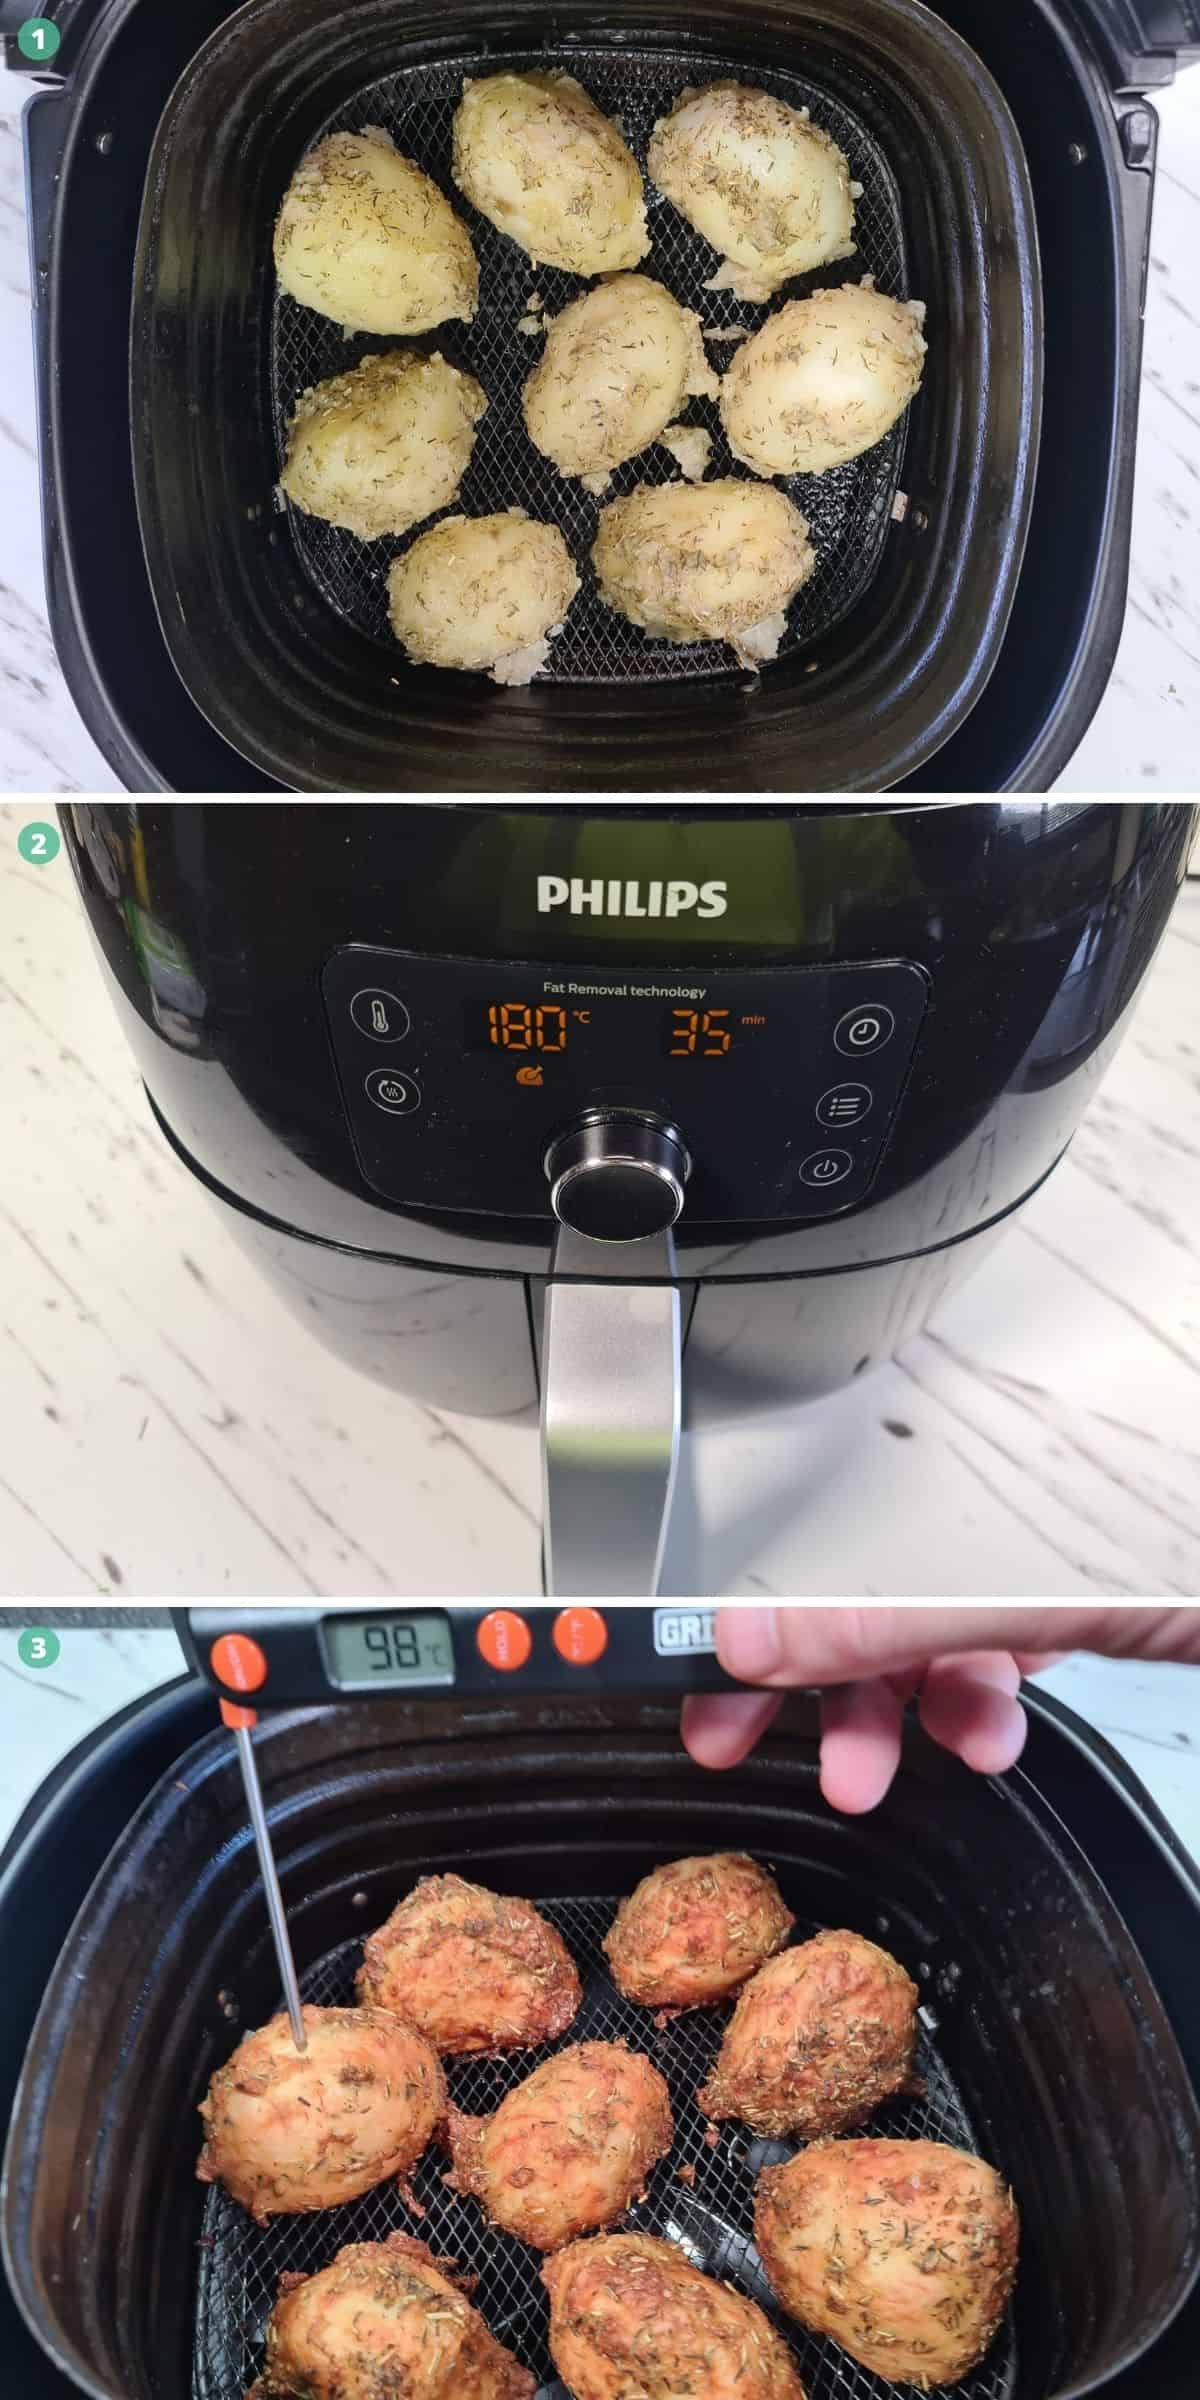 cooking the potatoes in the air fryer